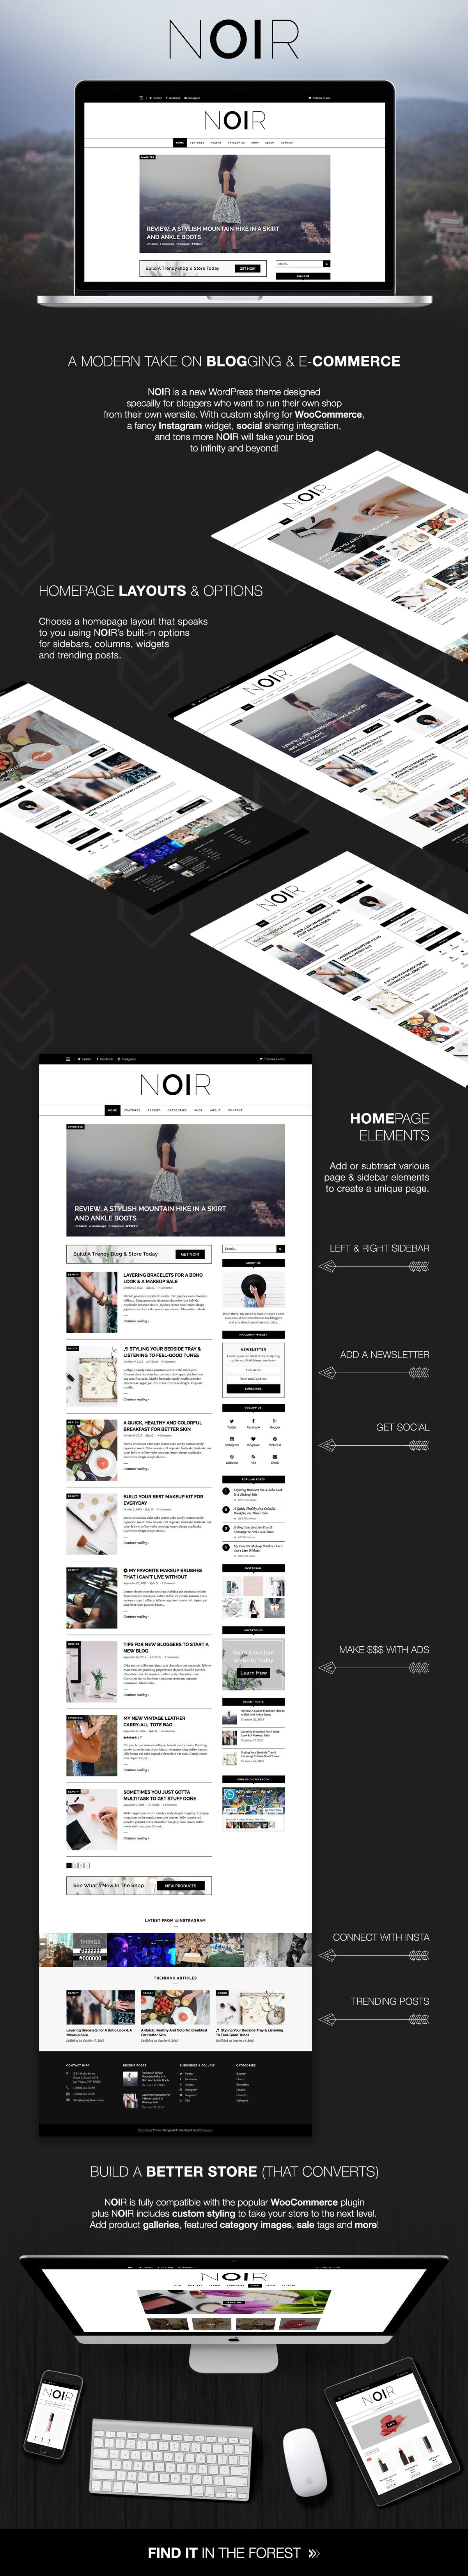 Noir WordPress Theme Features